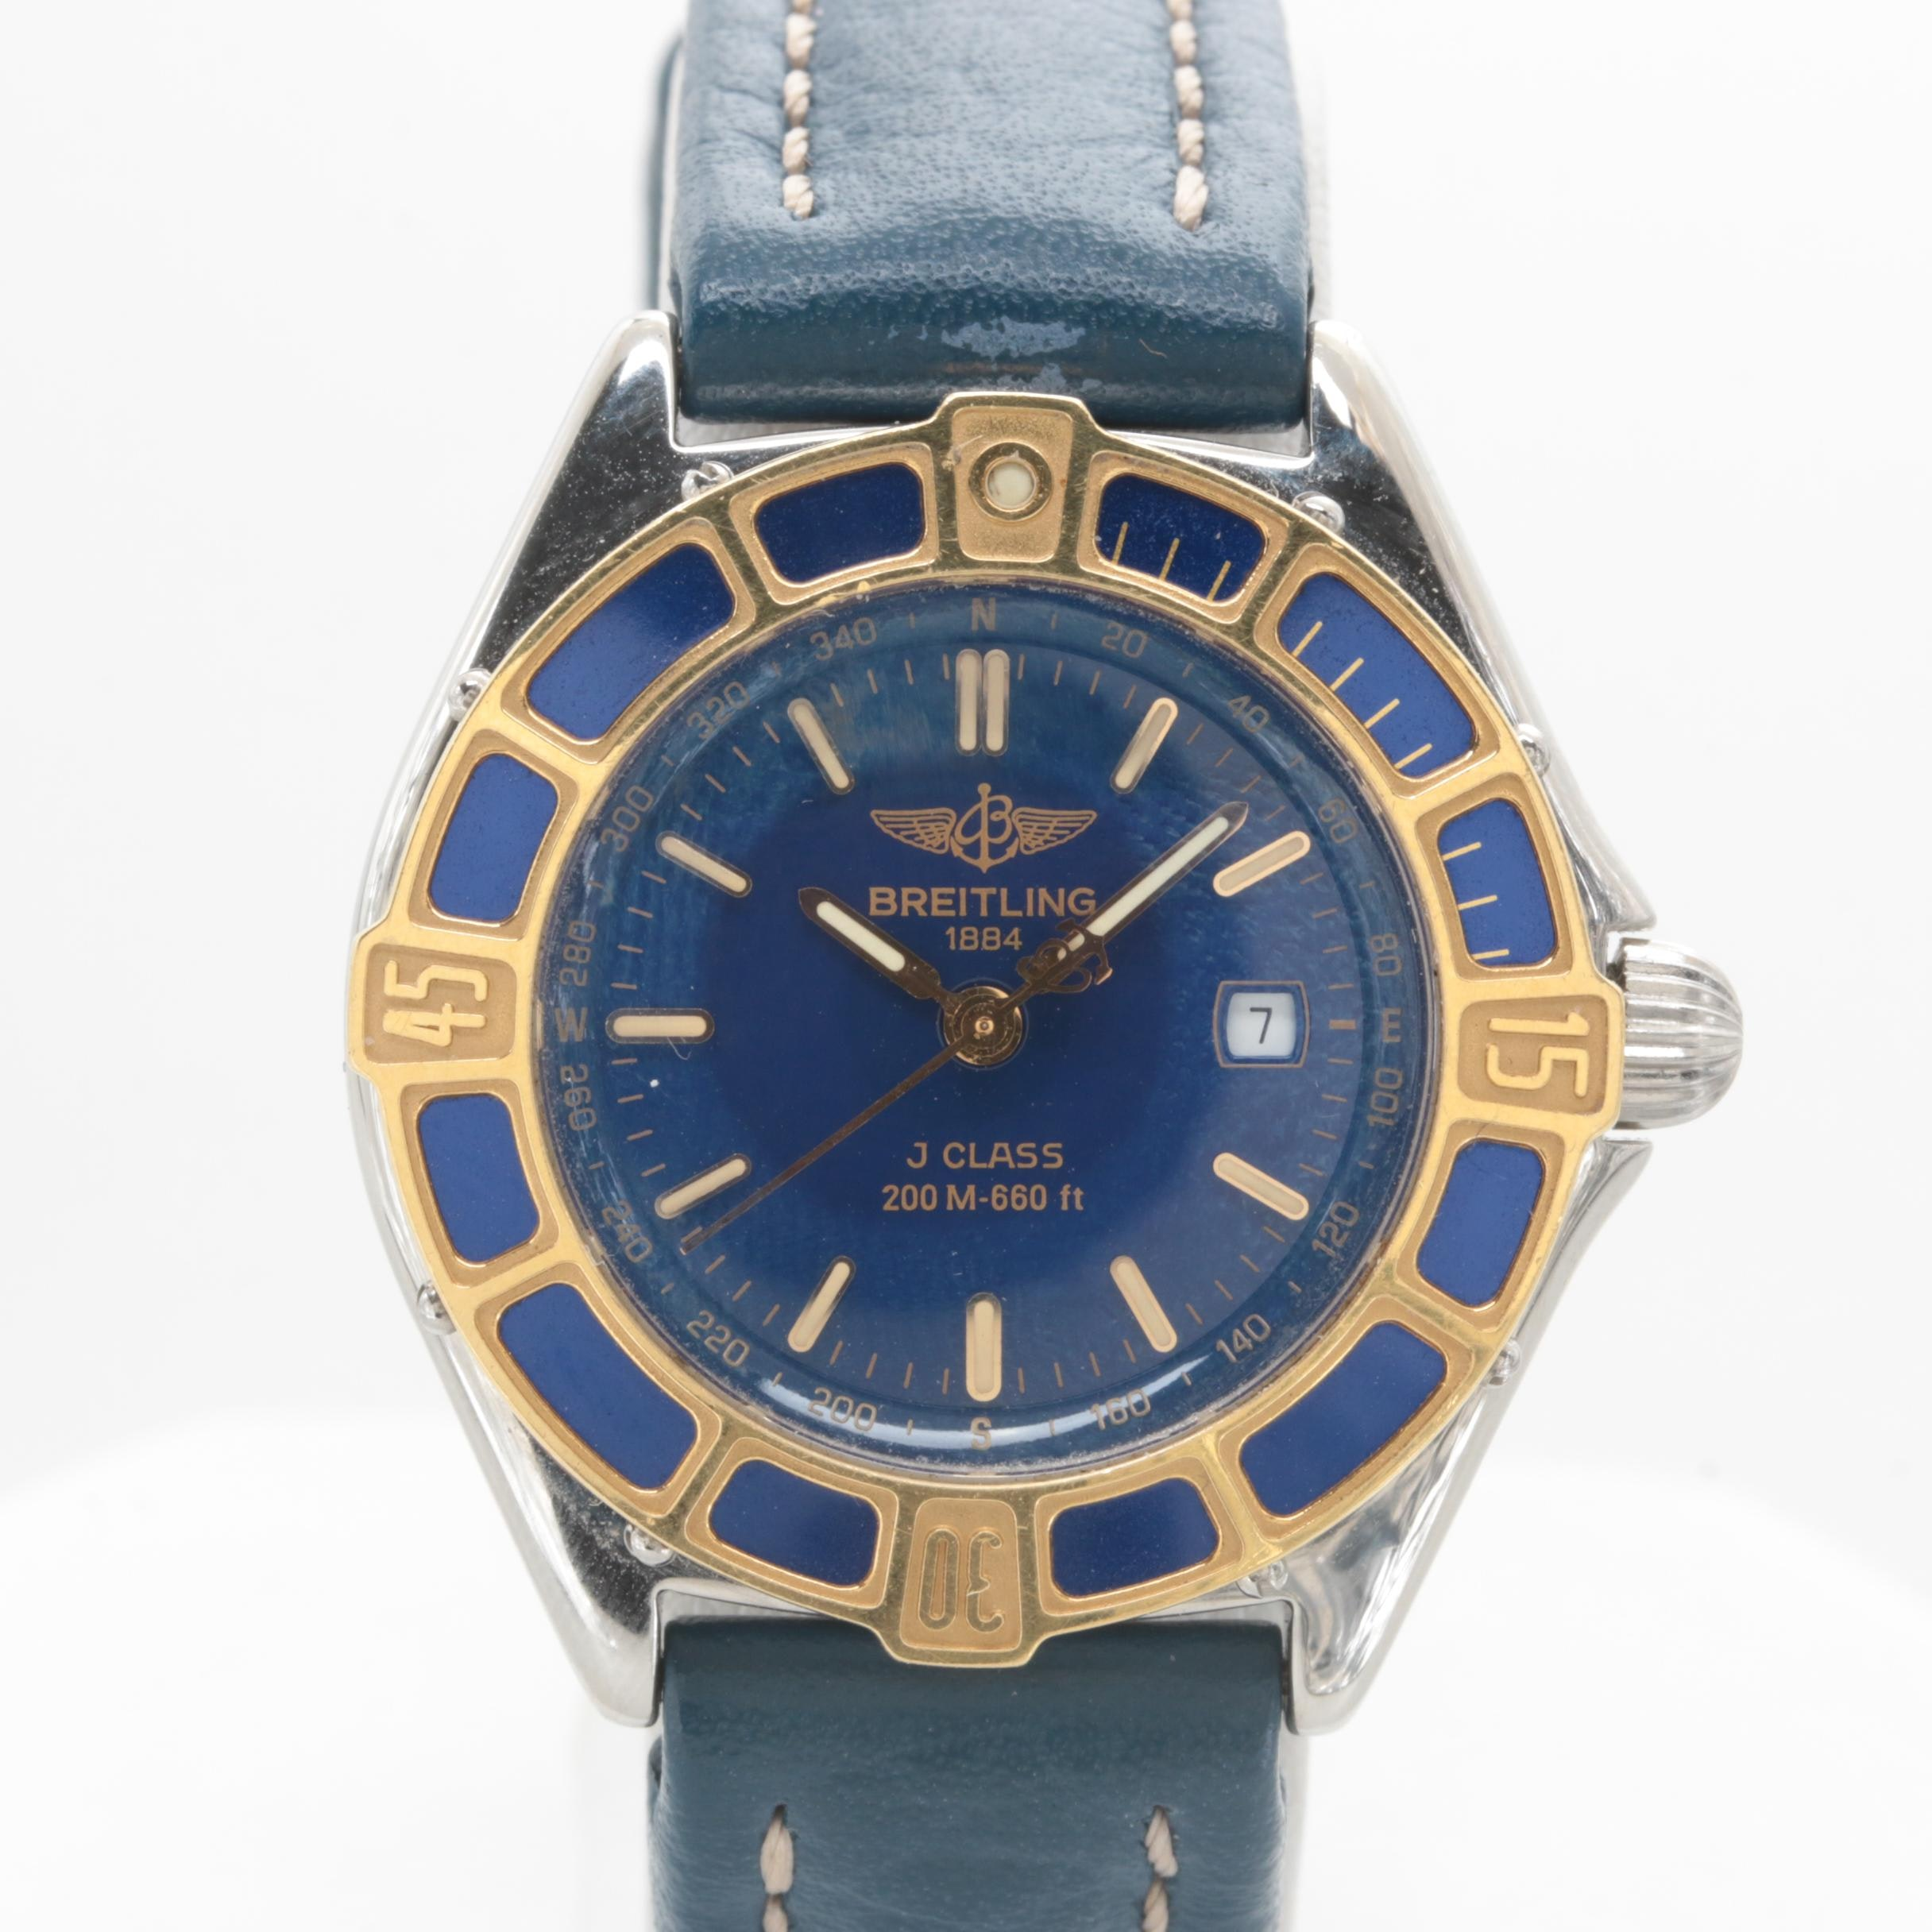 Breitling Stainless Steel and 18K Yellow Gold Blue Dial Wristwatch